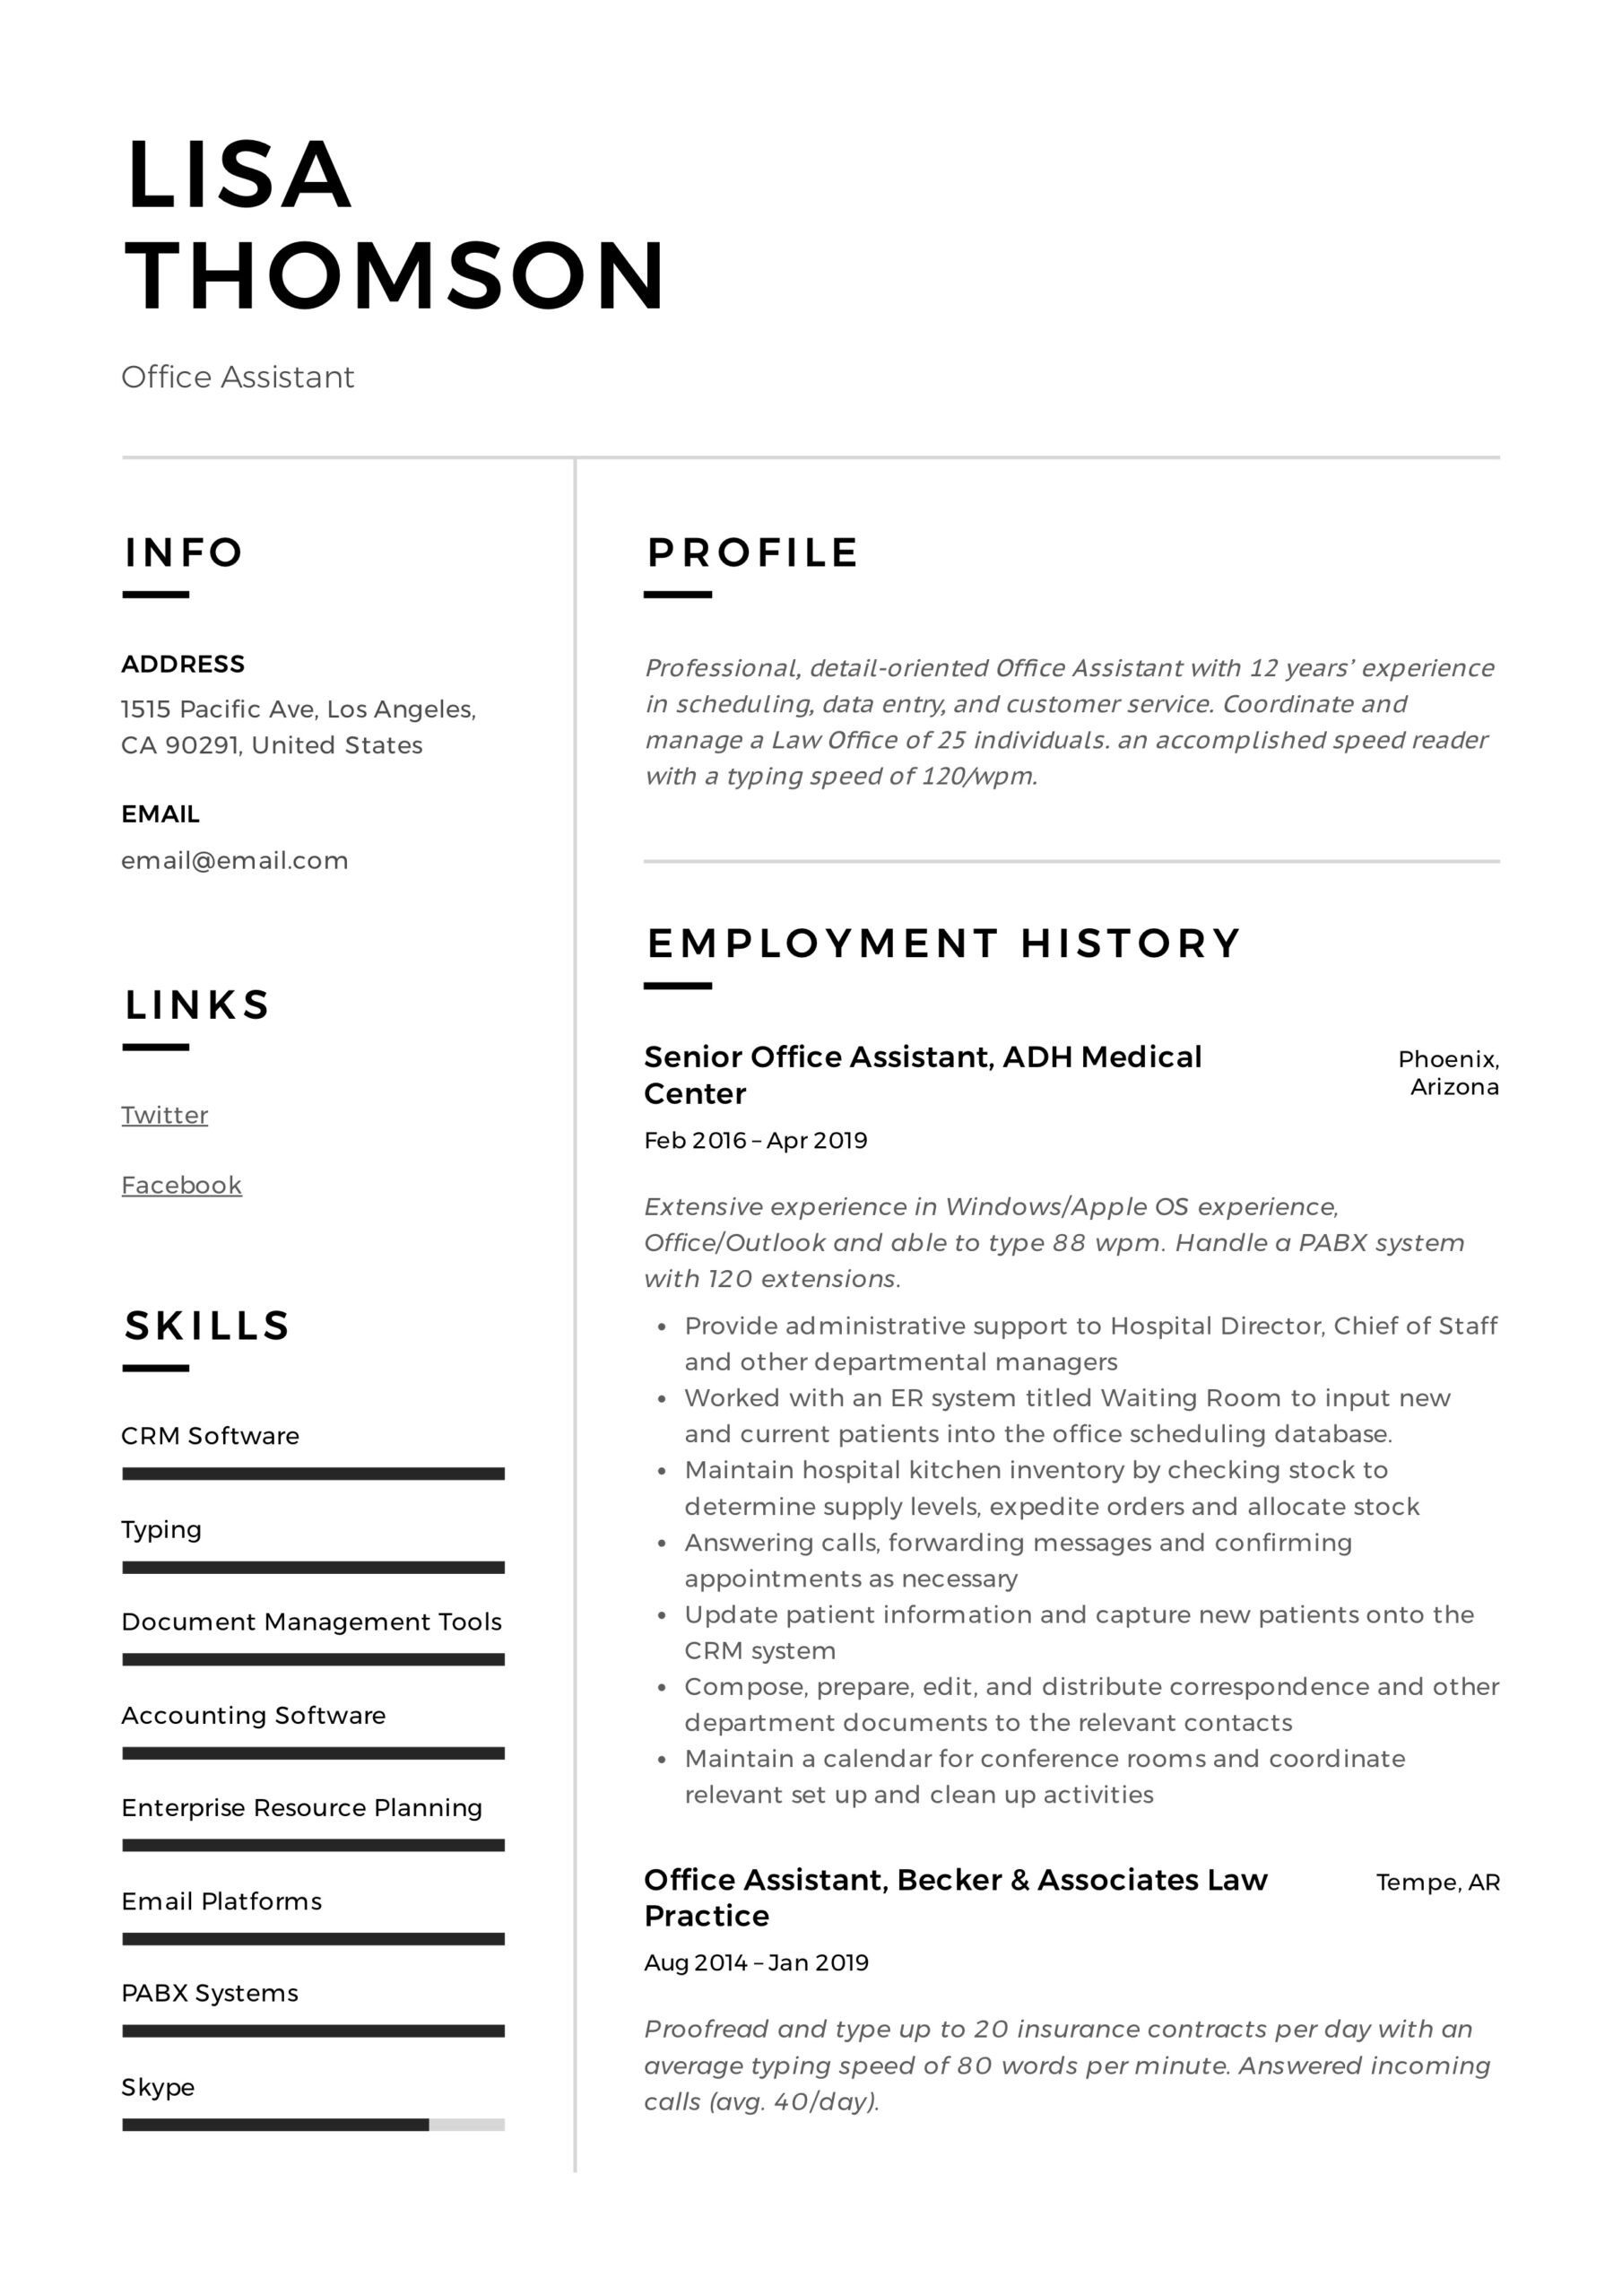 office assistant resume writing guide templates administrator duties for lisa thomson Resume Office Administrator Duties For Resume